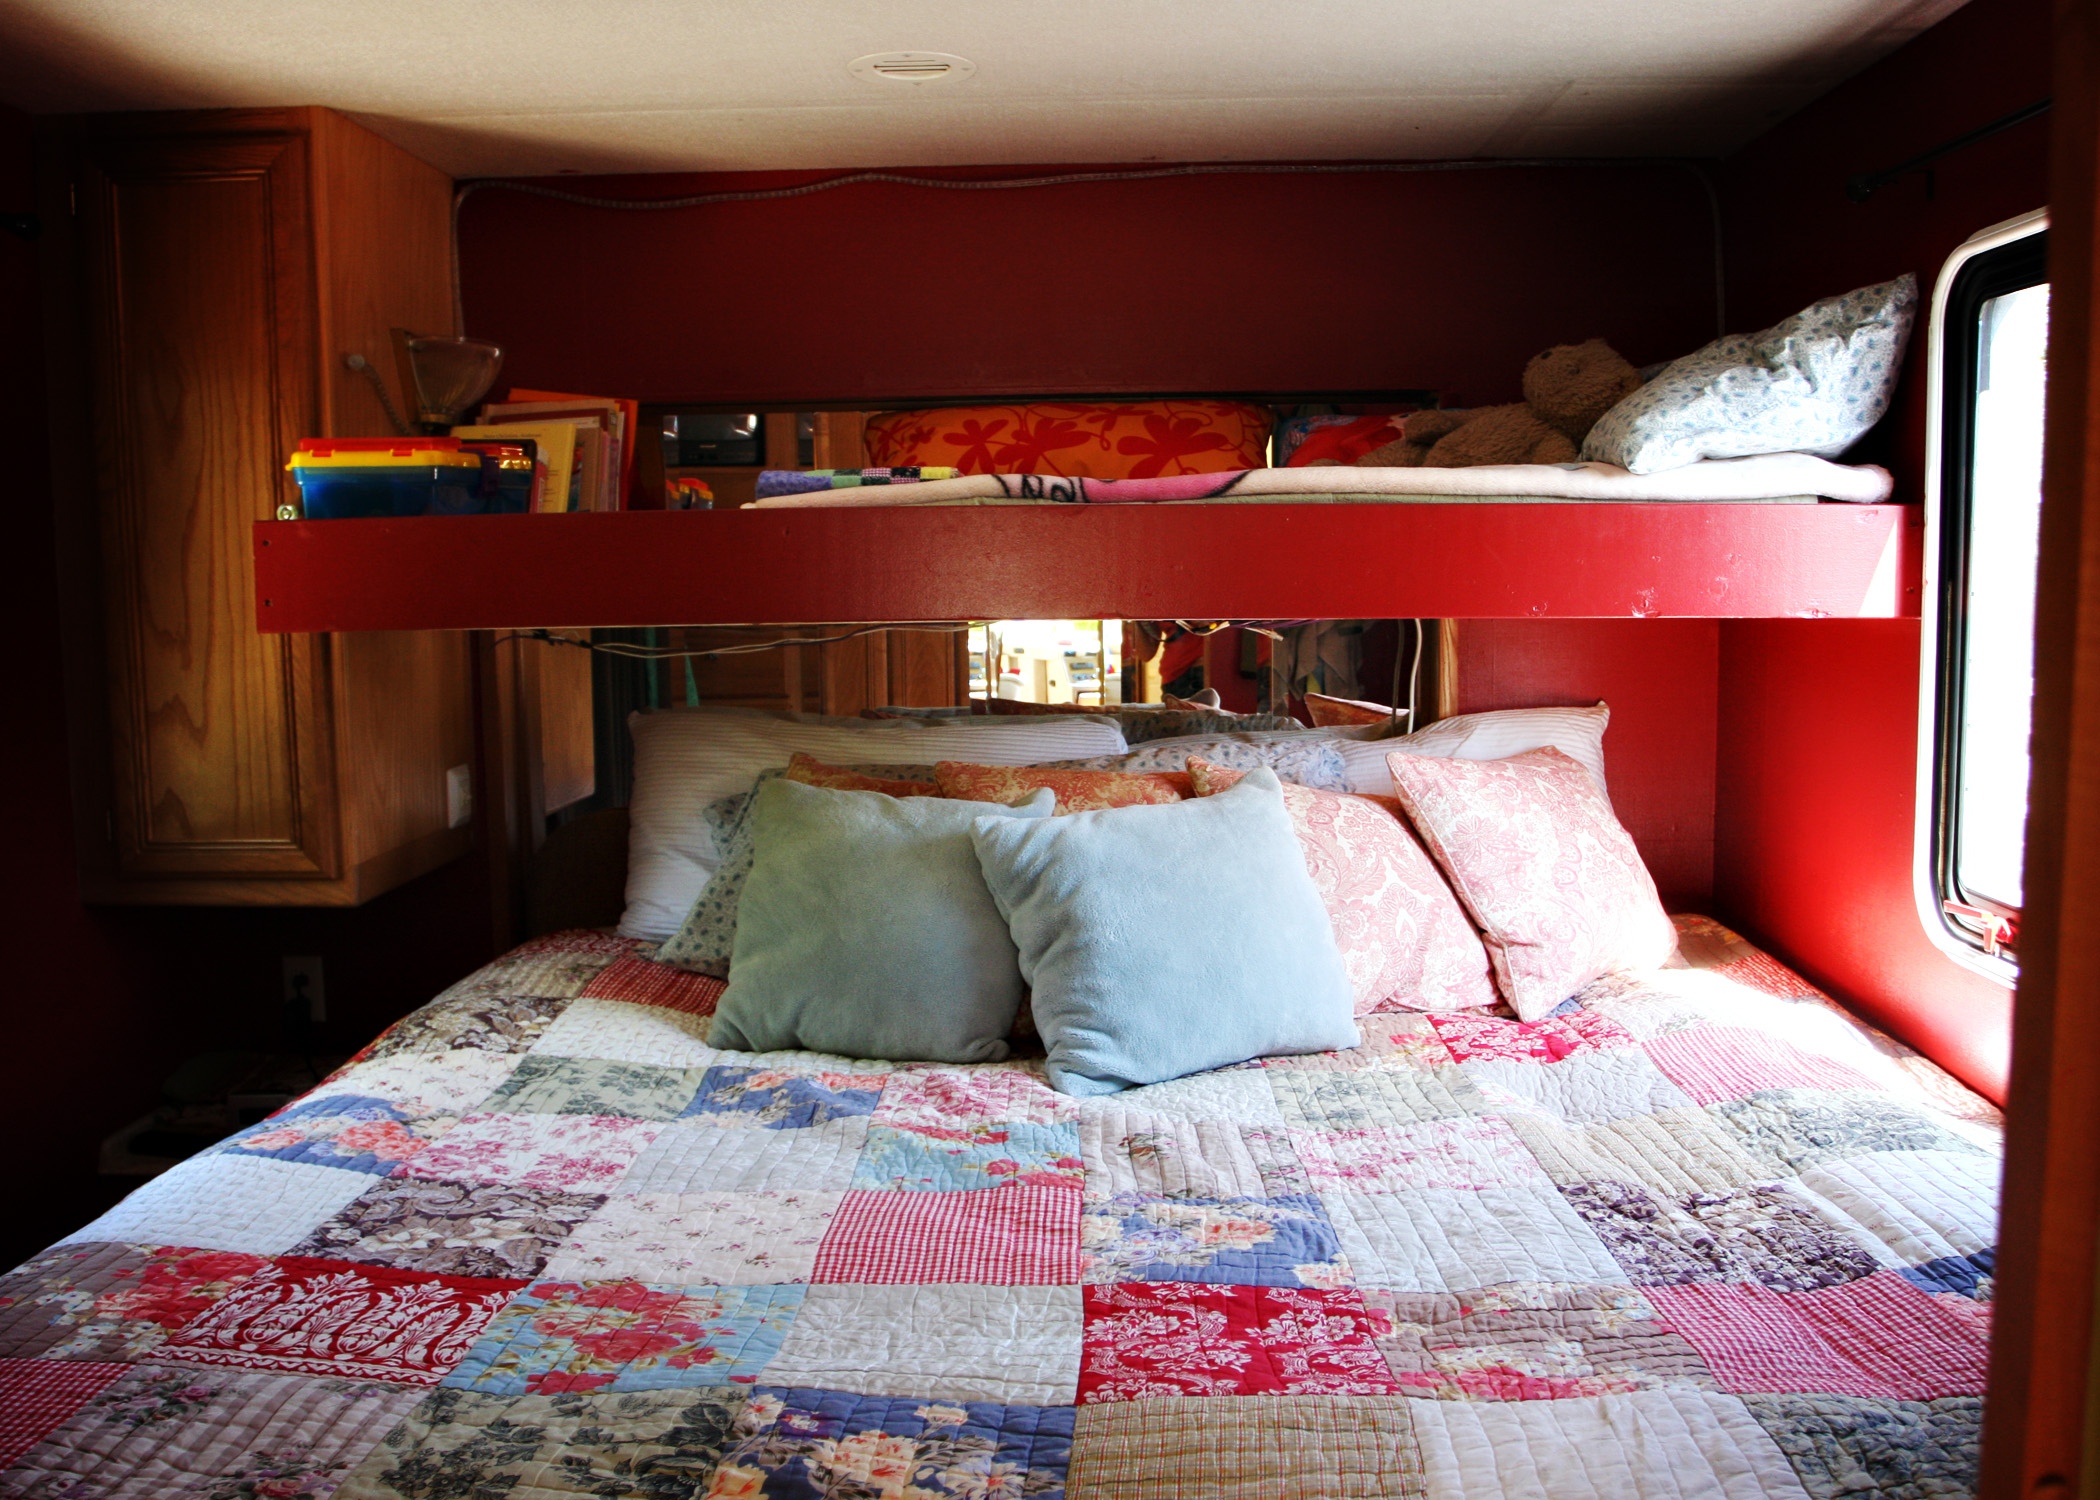 06_The Bedroom and Loft.jpg